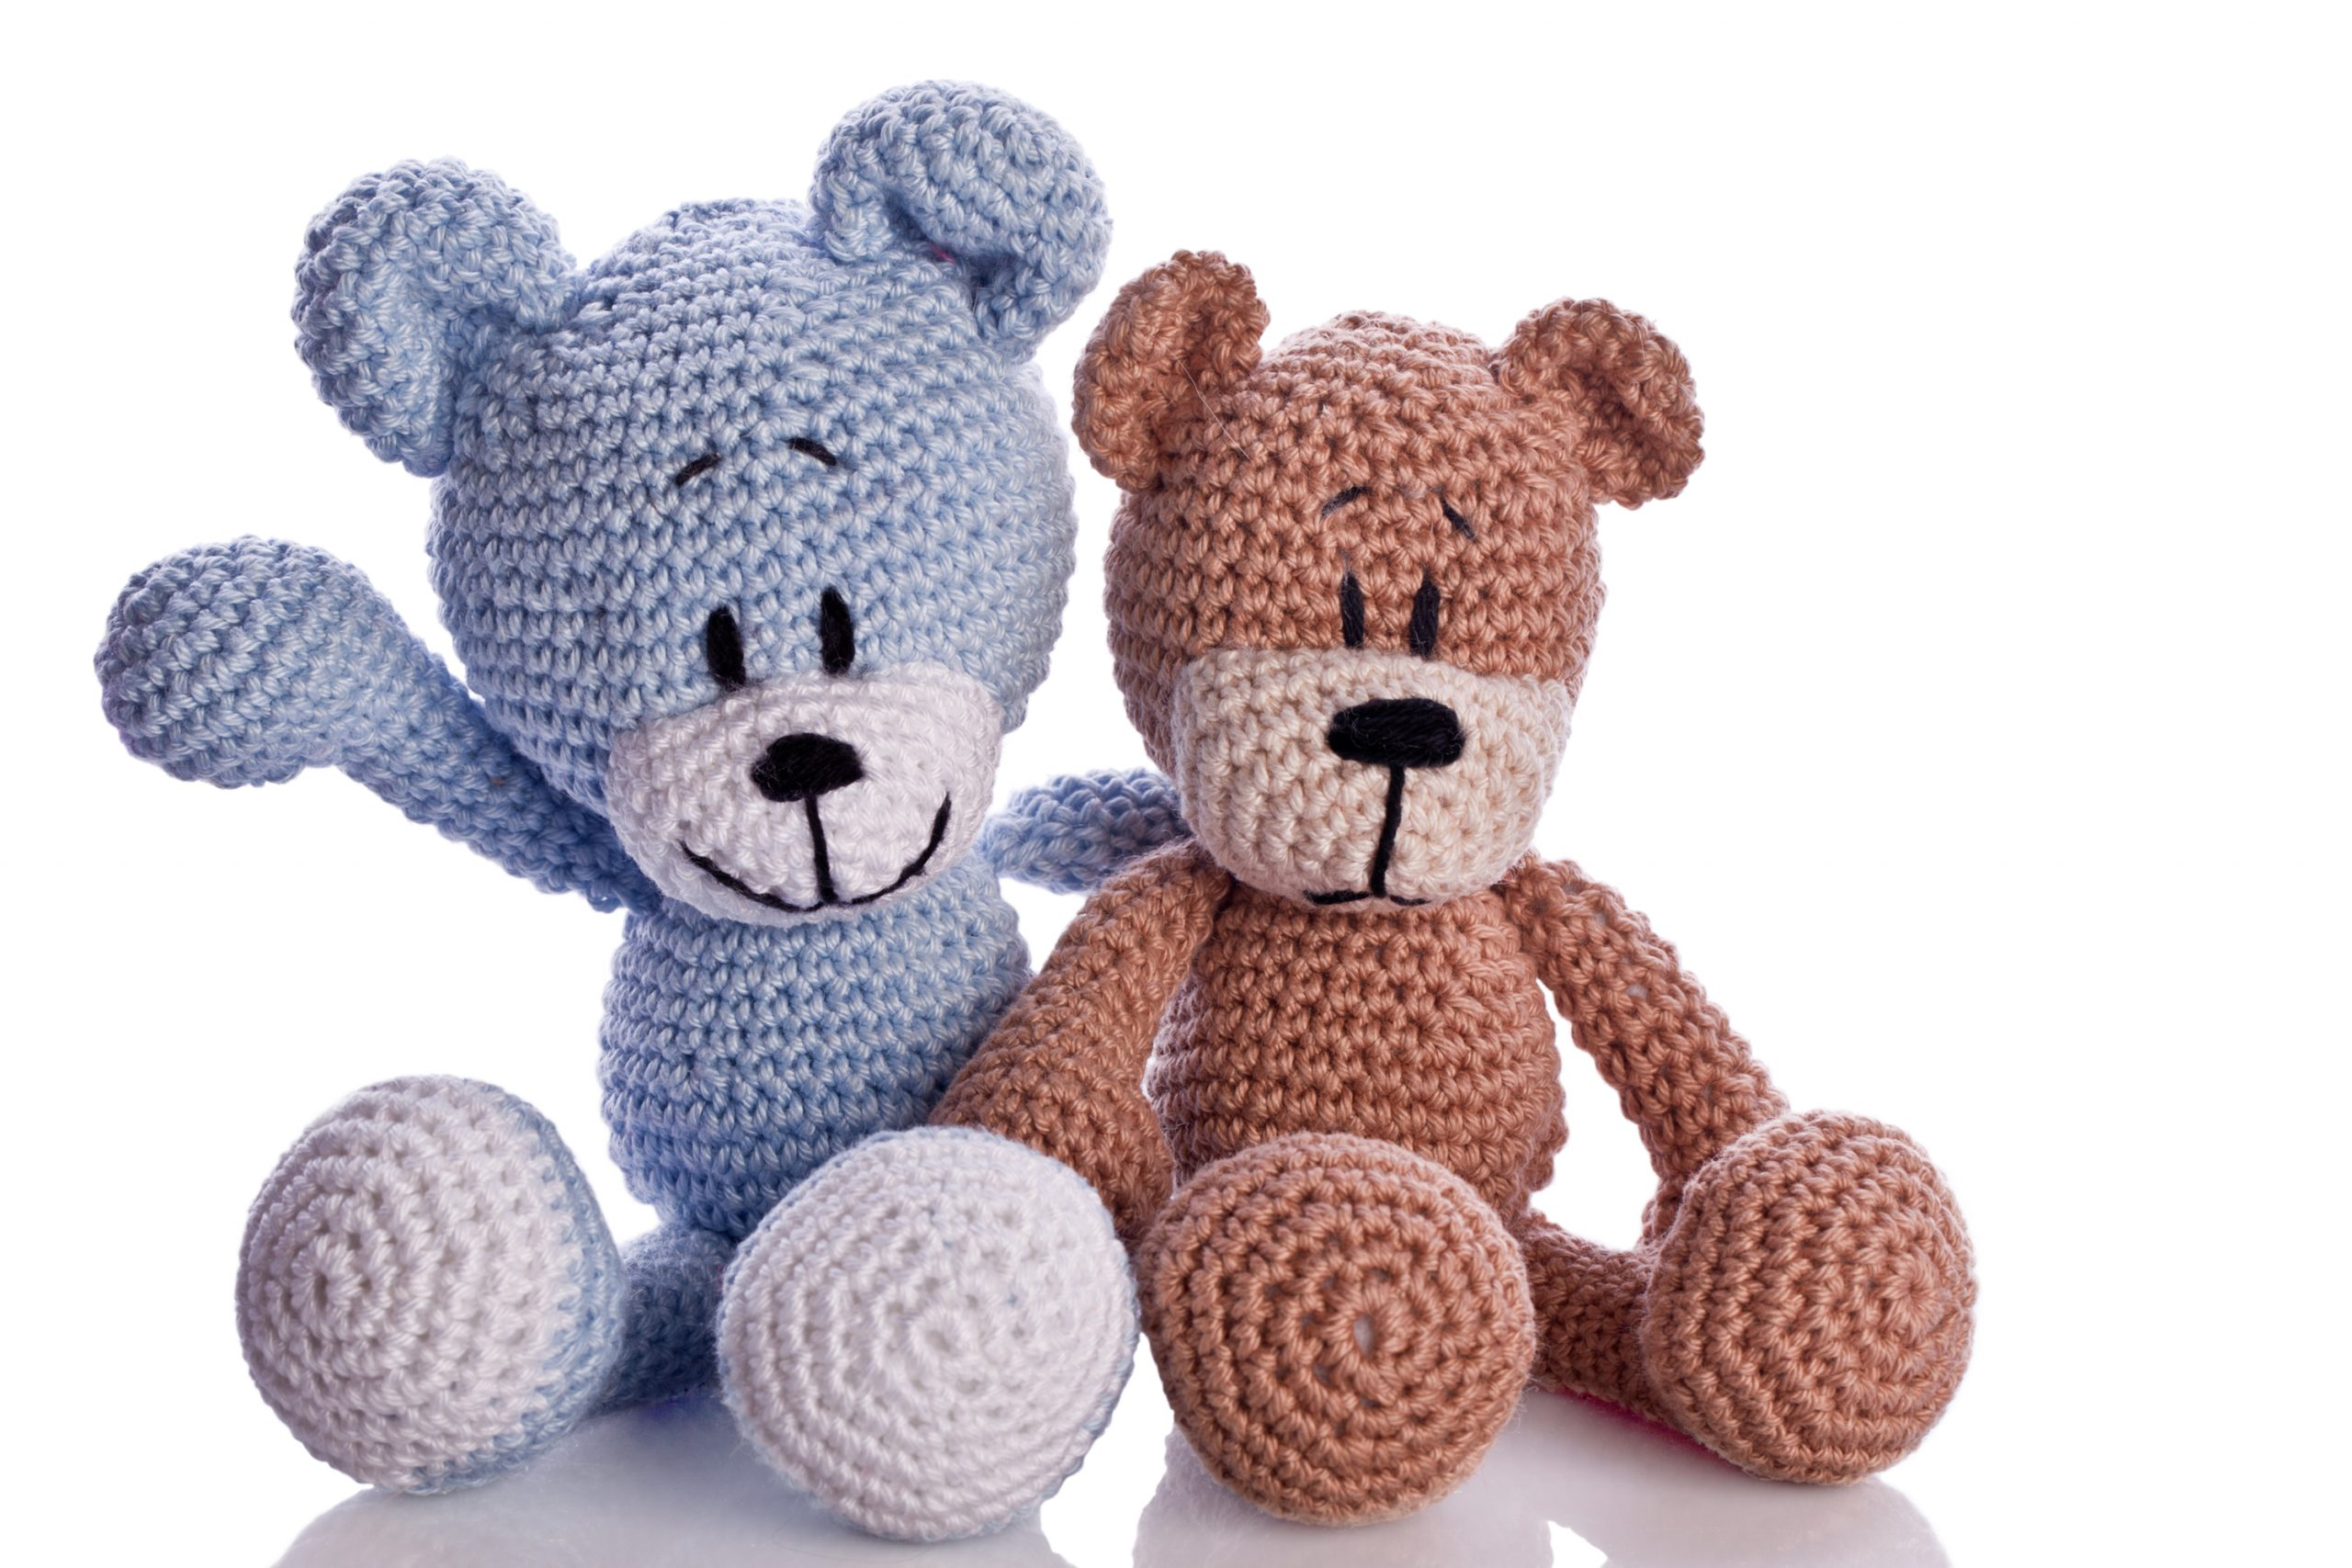 When I stumbled upon an adorable crochet peeps pattern I knew that I absolutely had to share. Keep reading for these super cute (and free!) crochet peeps patterns so you can make your own adorable bears!